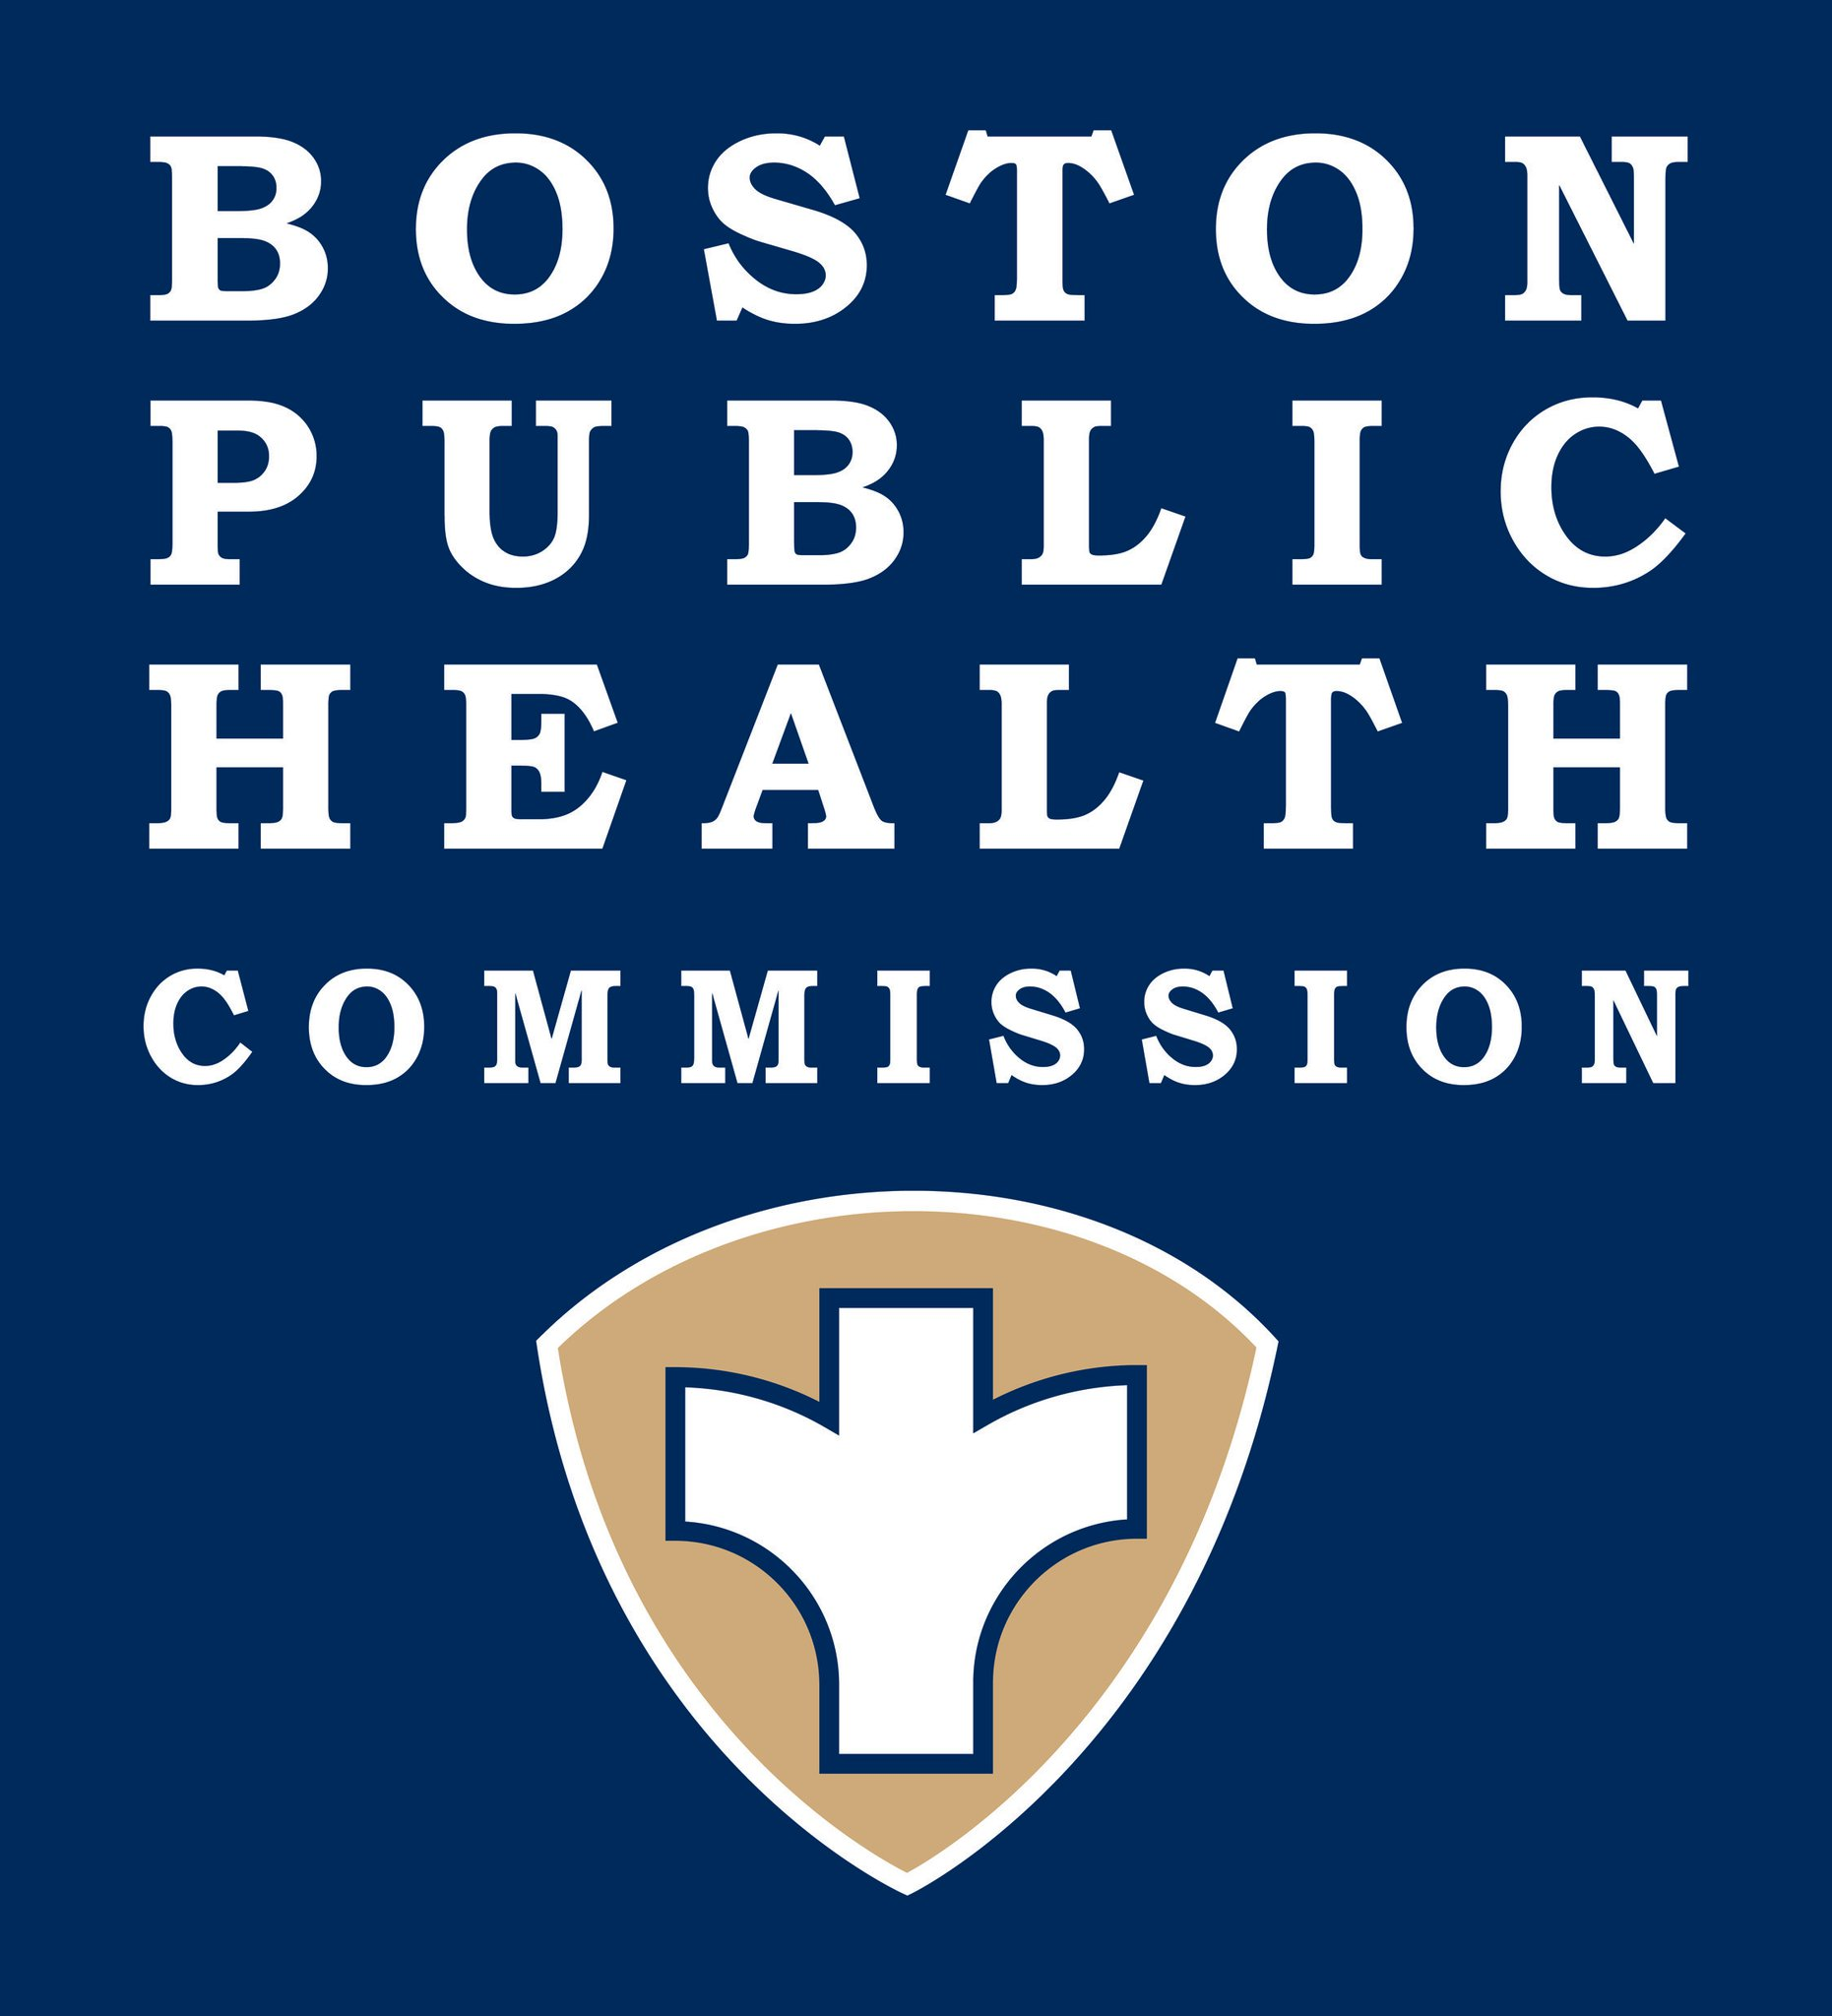 Boston_Public_Health_Commission_Logo.jpg